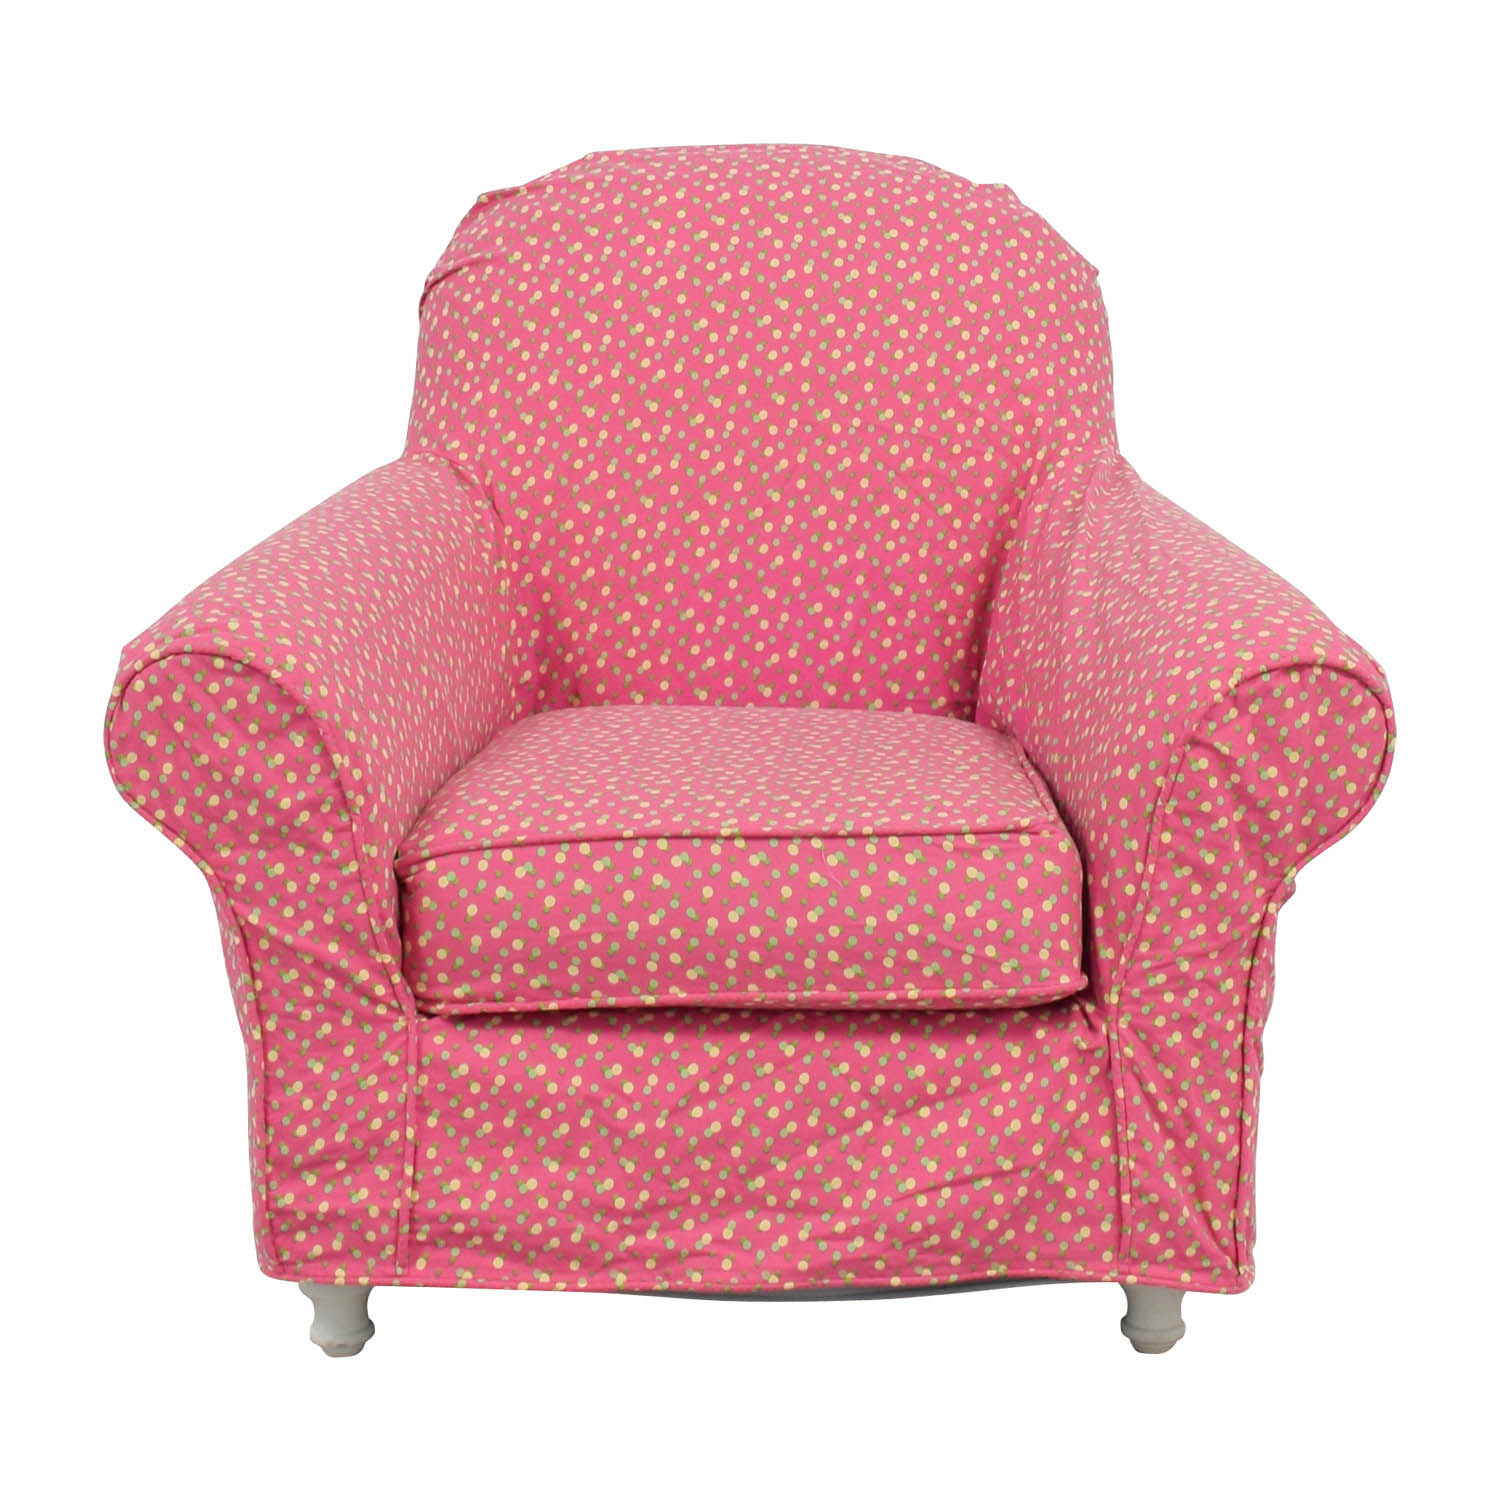 pottery barn dining chair covers swivel singapore chairs used for sale